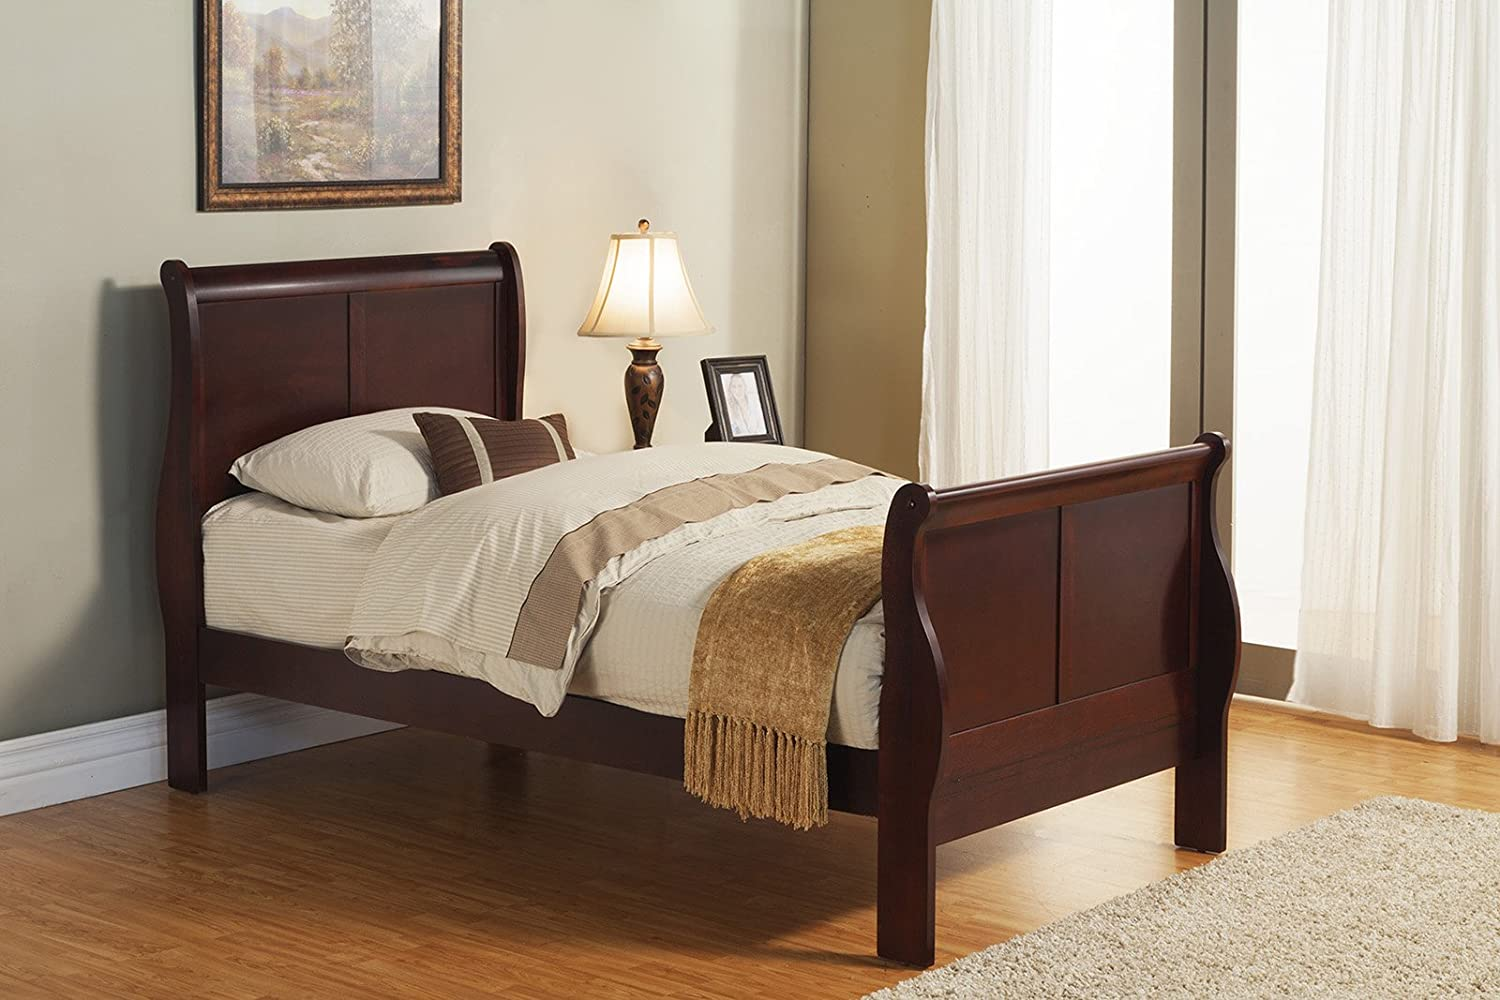 amazoncom alpine furniture louis philippe ii sleigh bed home u0026 kitchen